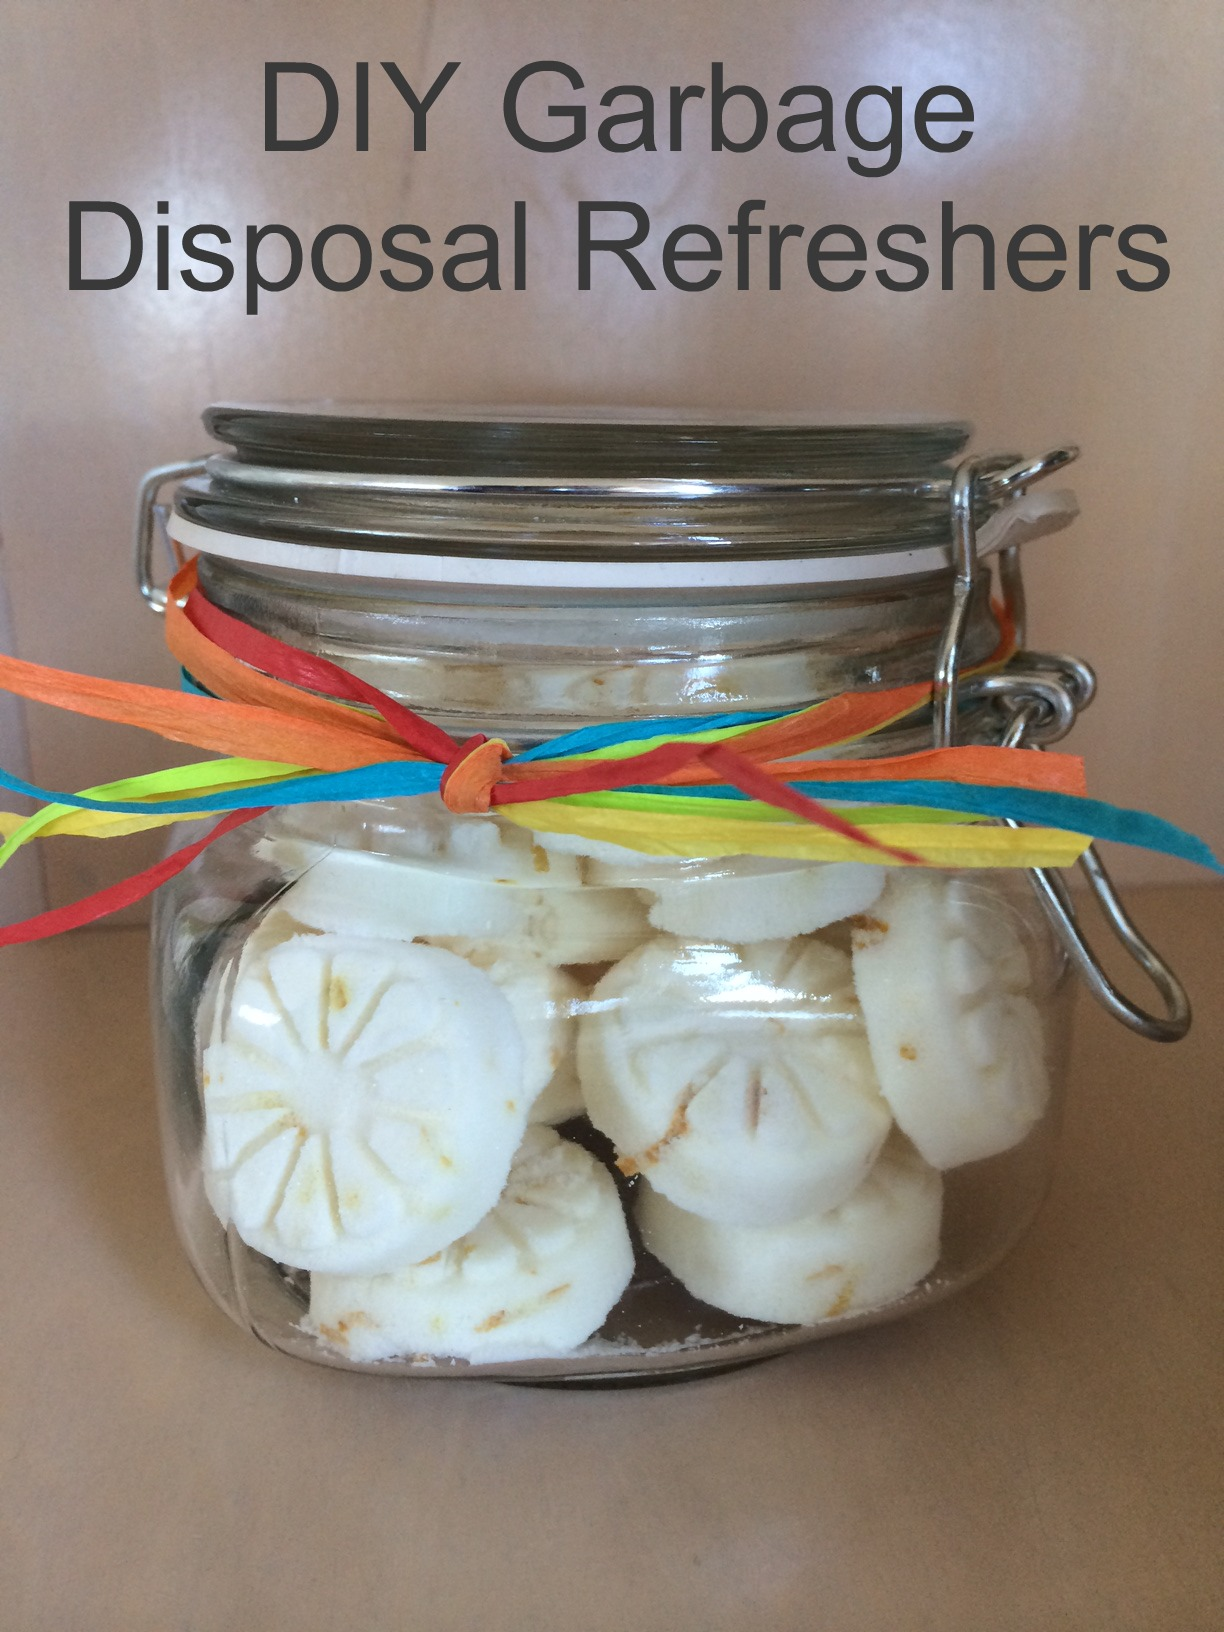 DIY Garbage Disposal Refreshers